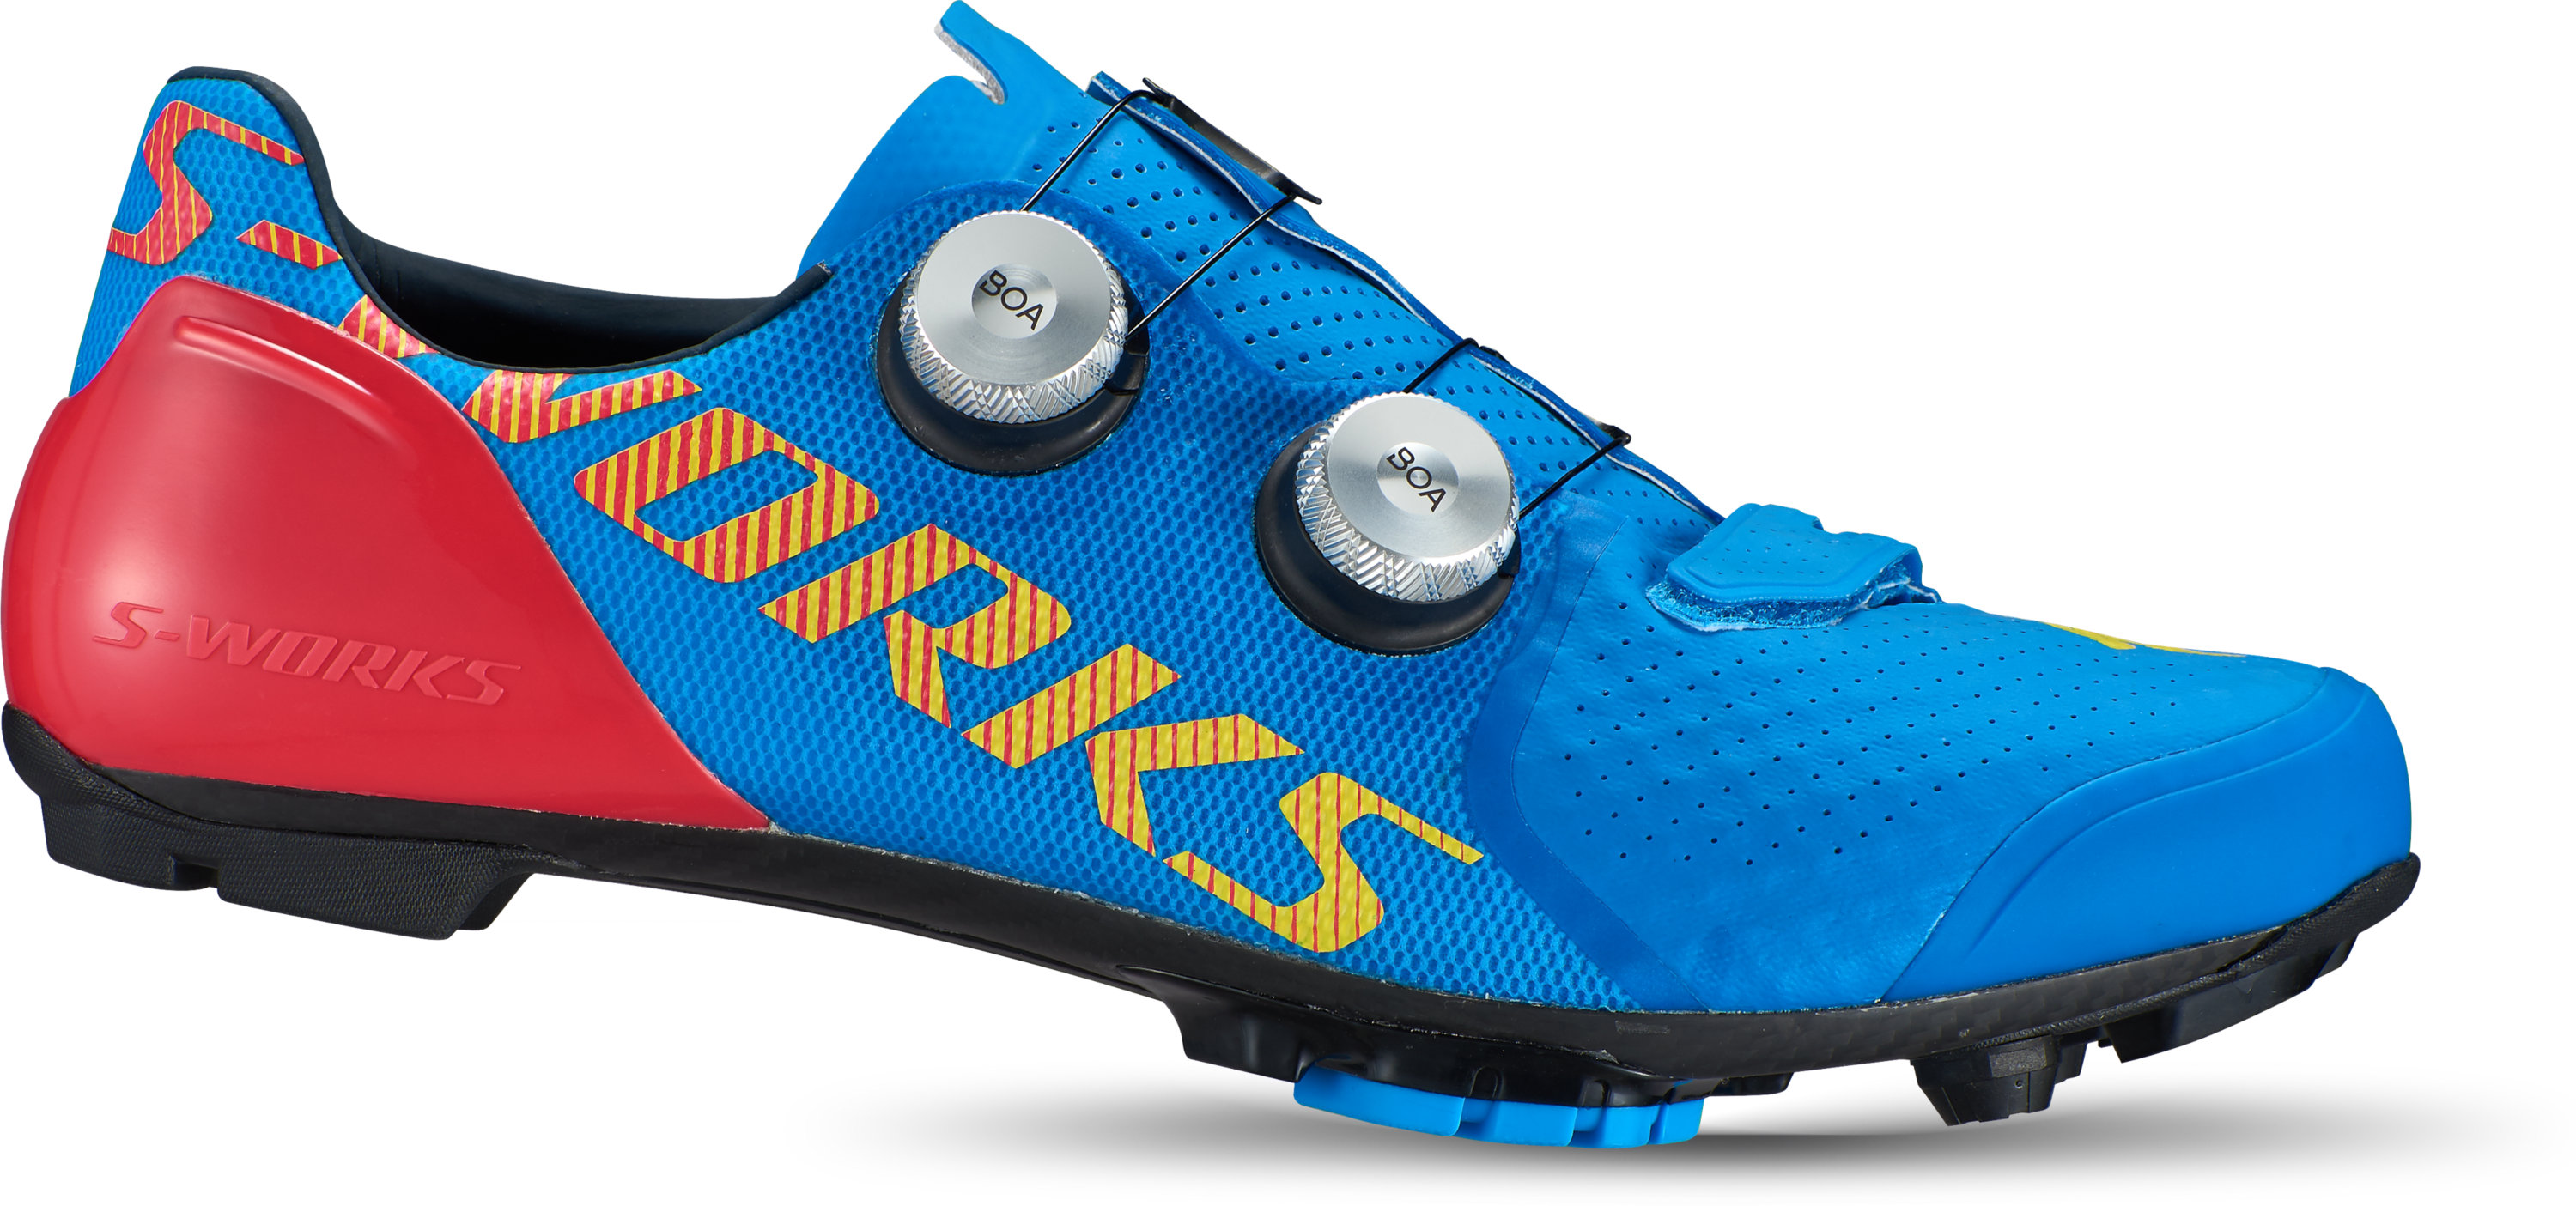 S Works Recon Mountain Bike Shoes |